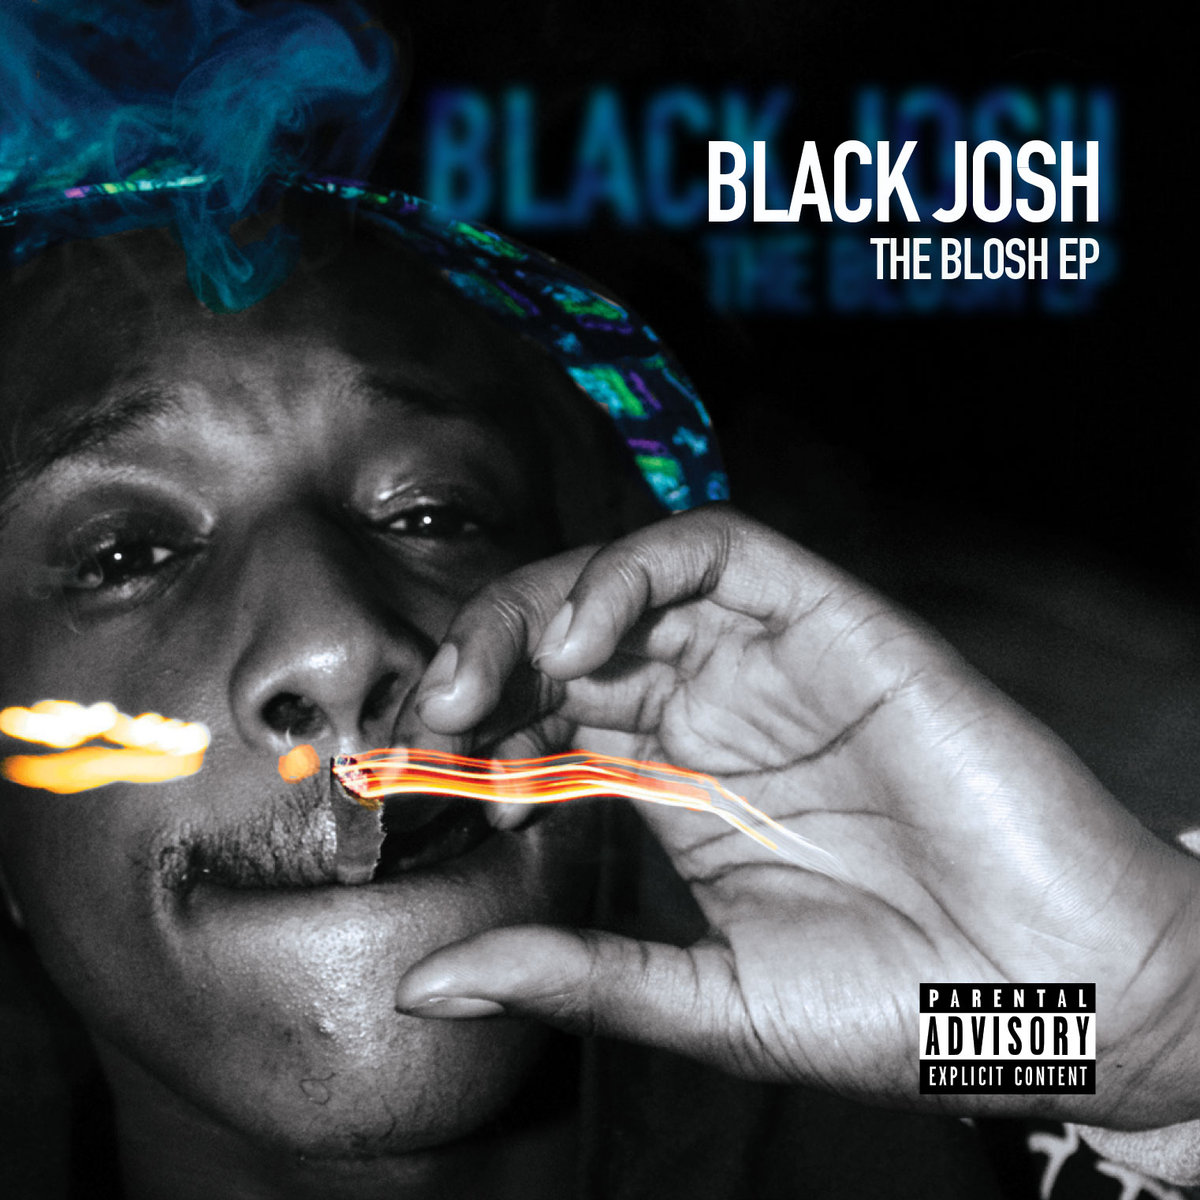 The_blosh_ep